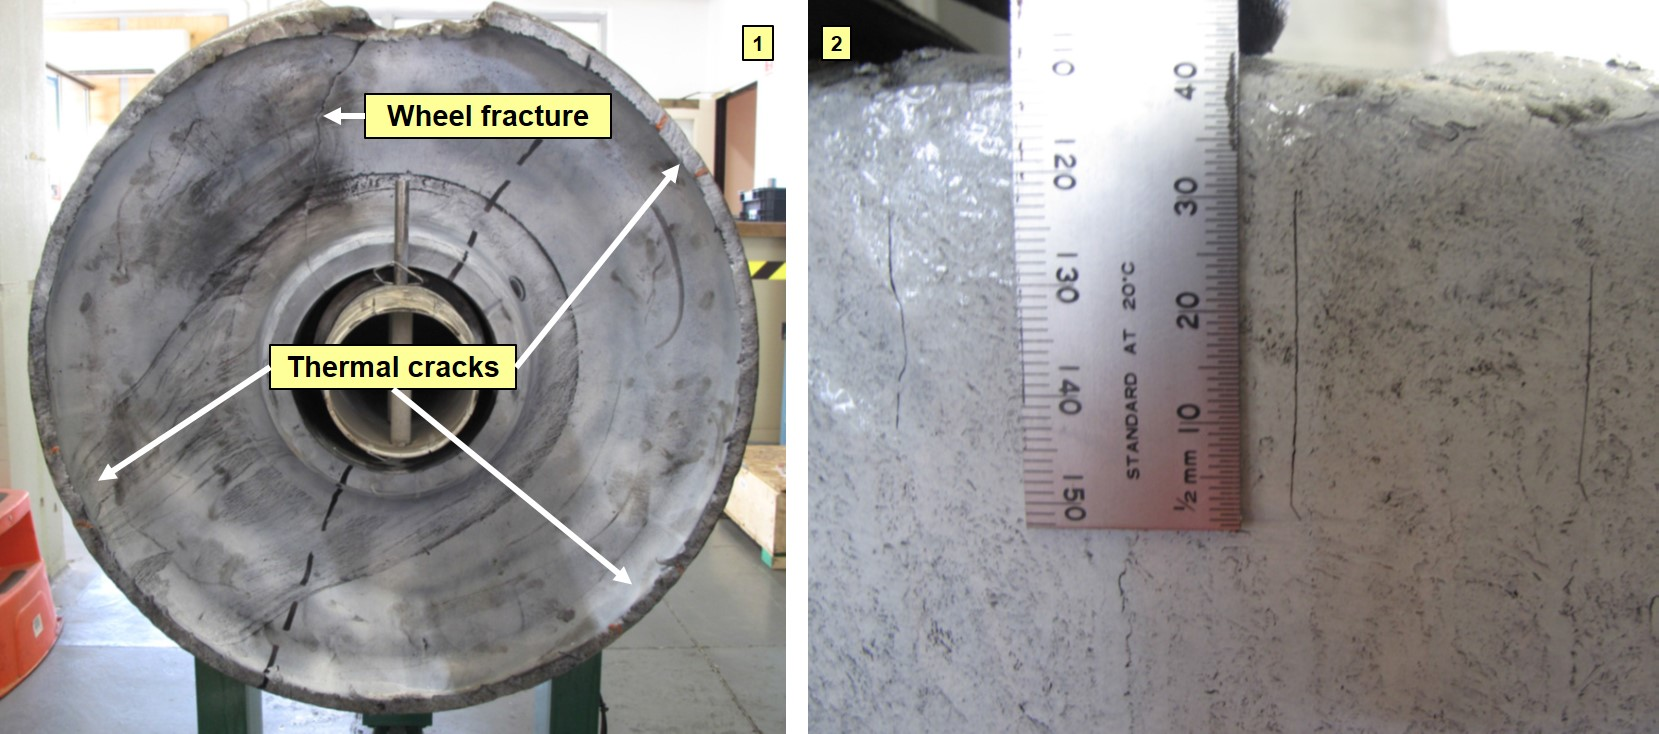 Figure 10: Thermal cracks identified during metallurgical analysis